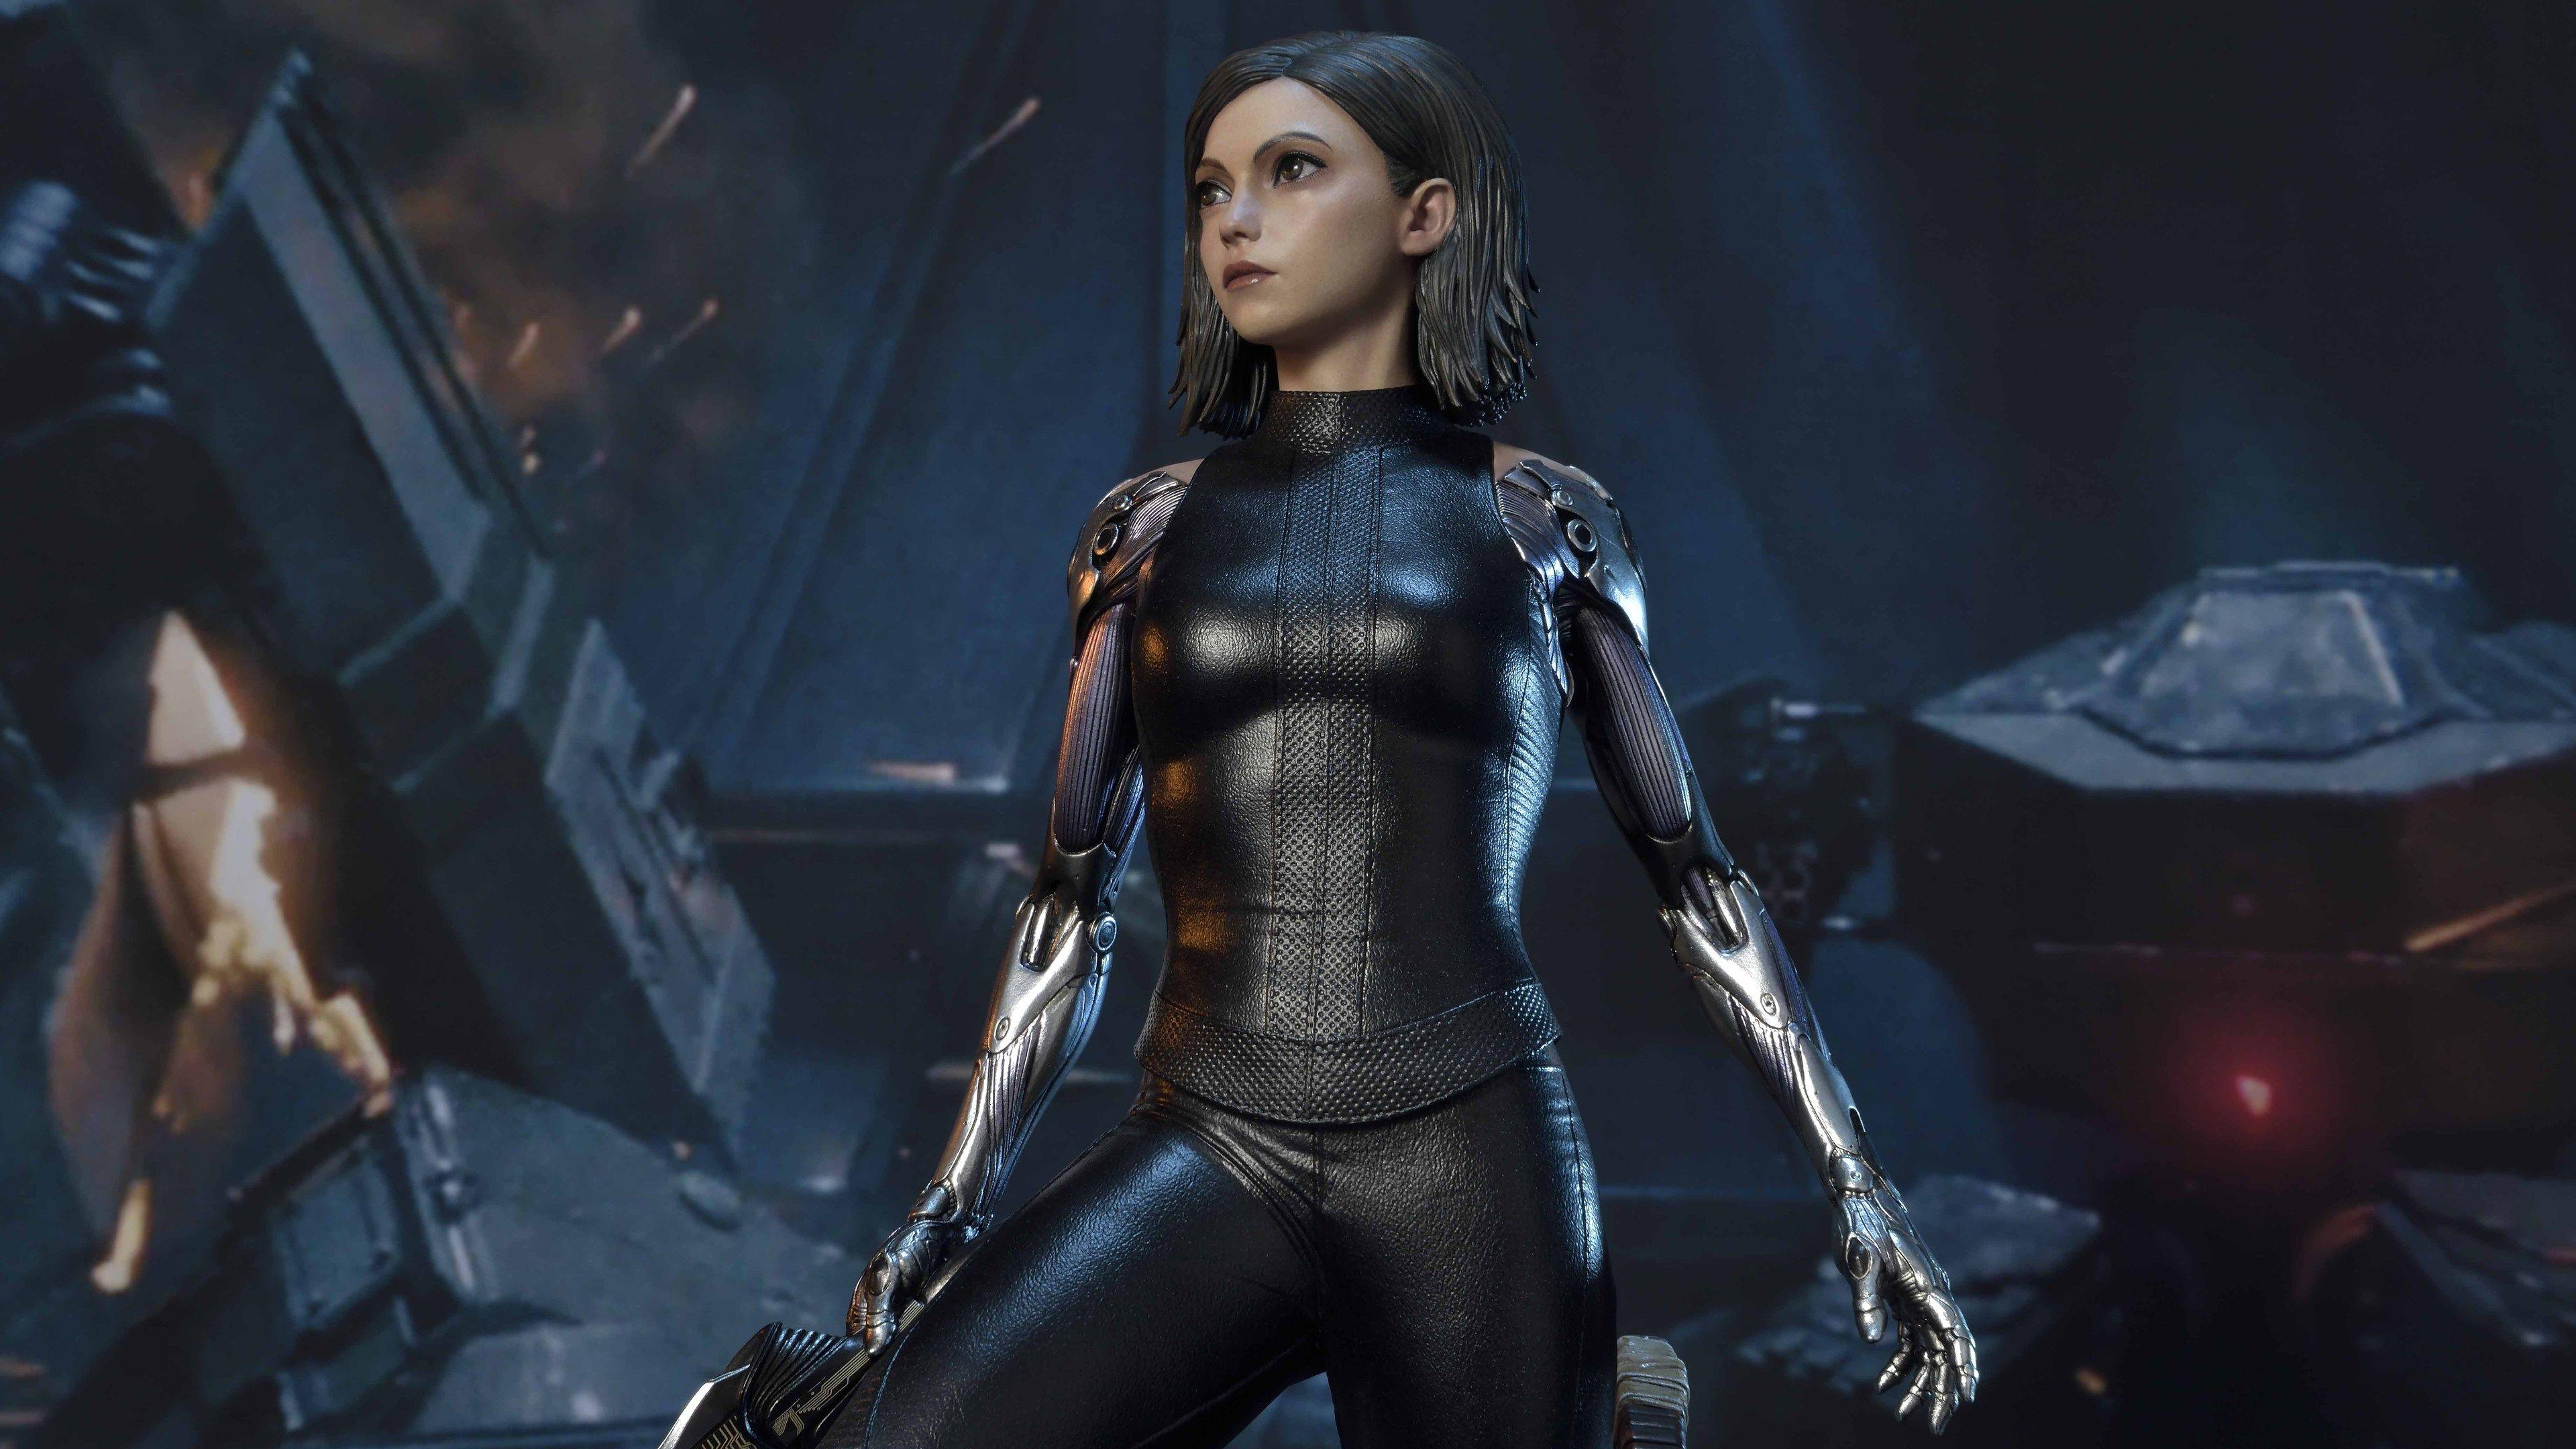 Wallpapers 4k Alita Battle Angel 2019 4k 2019 movies wallpapers, 4k